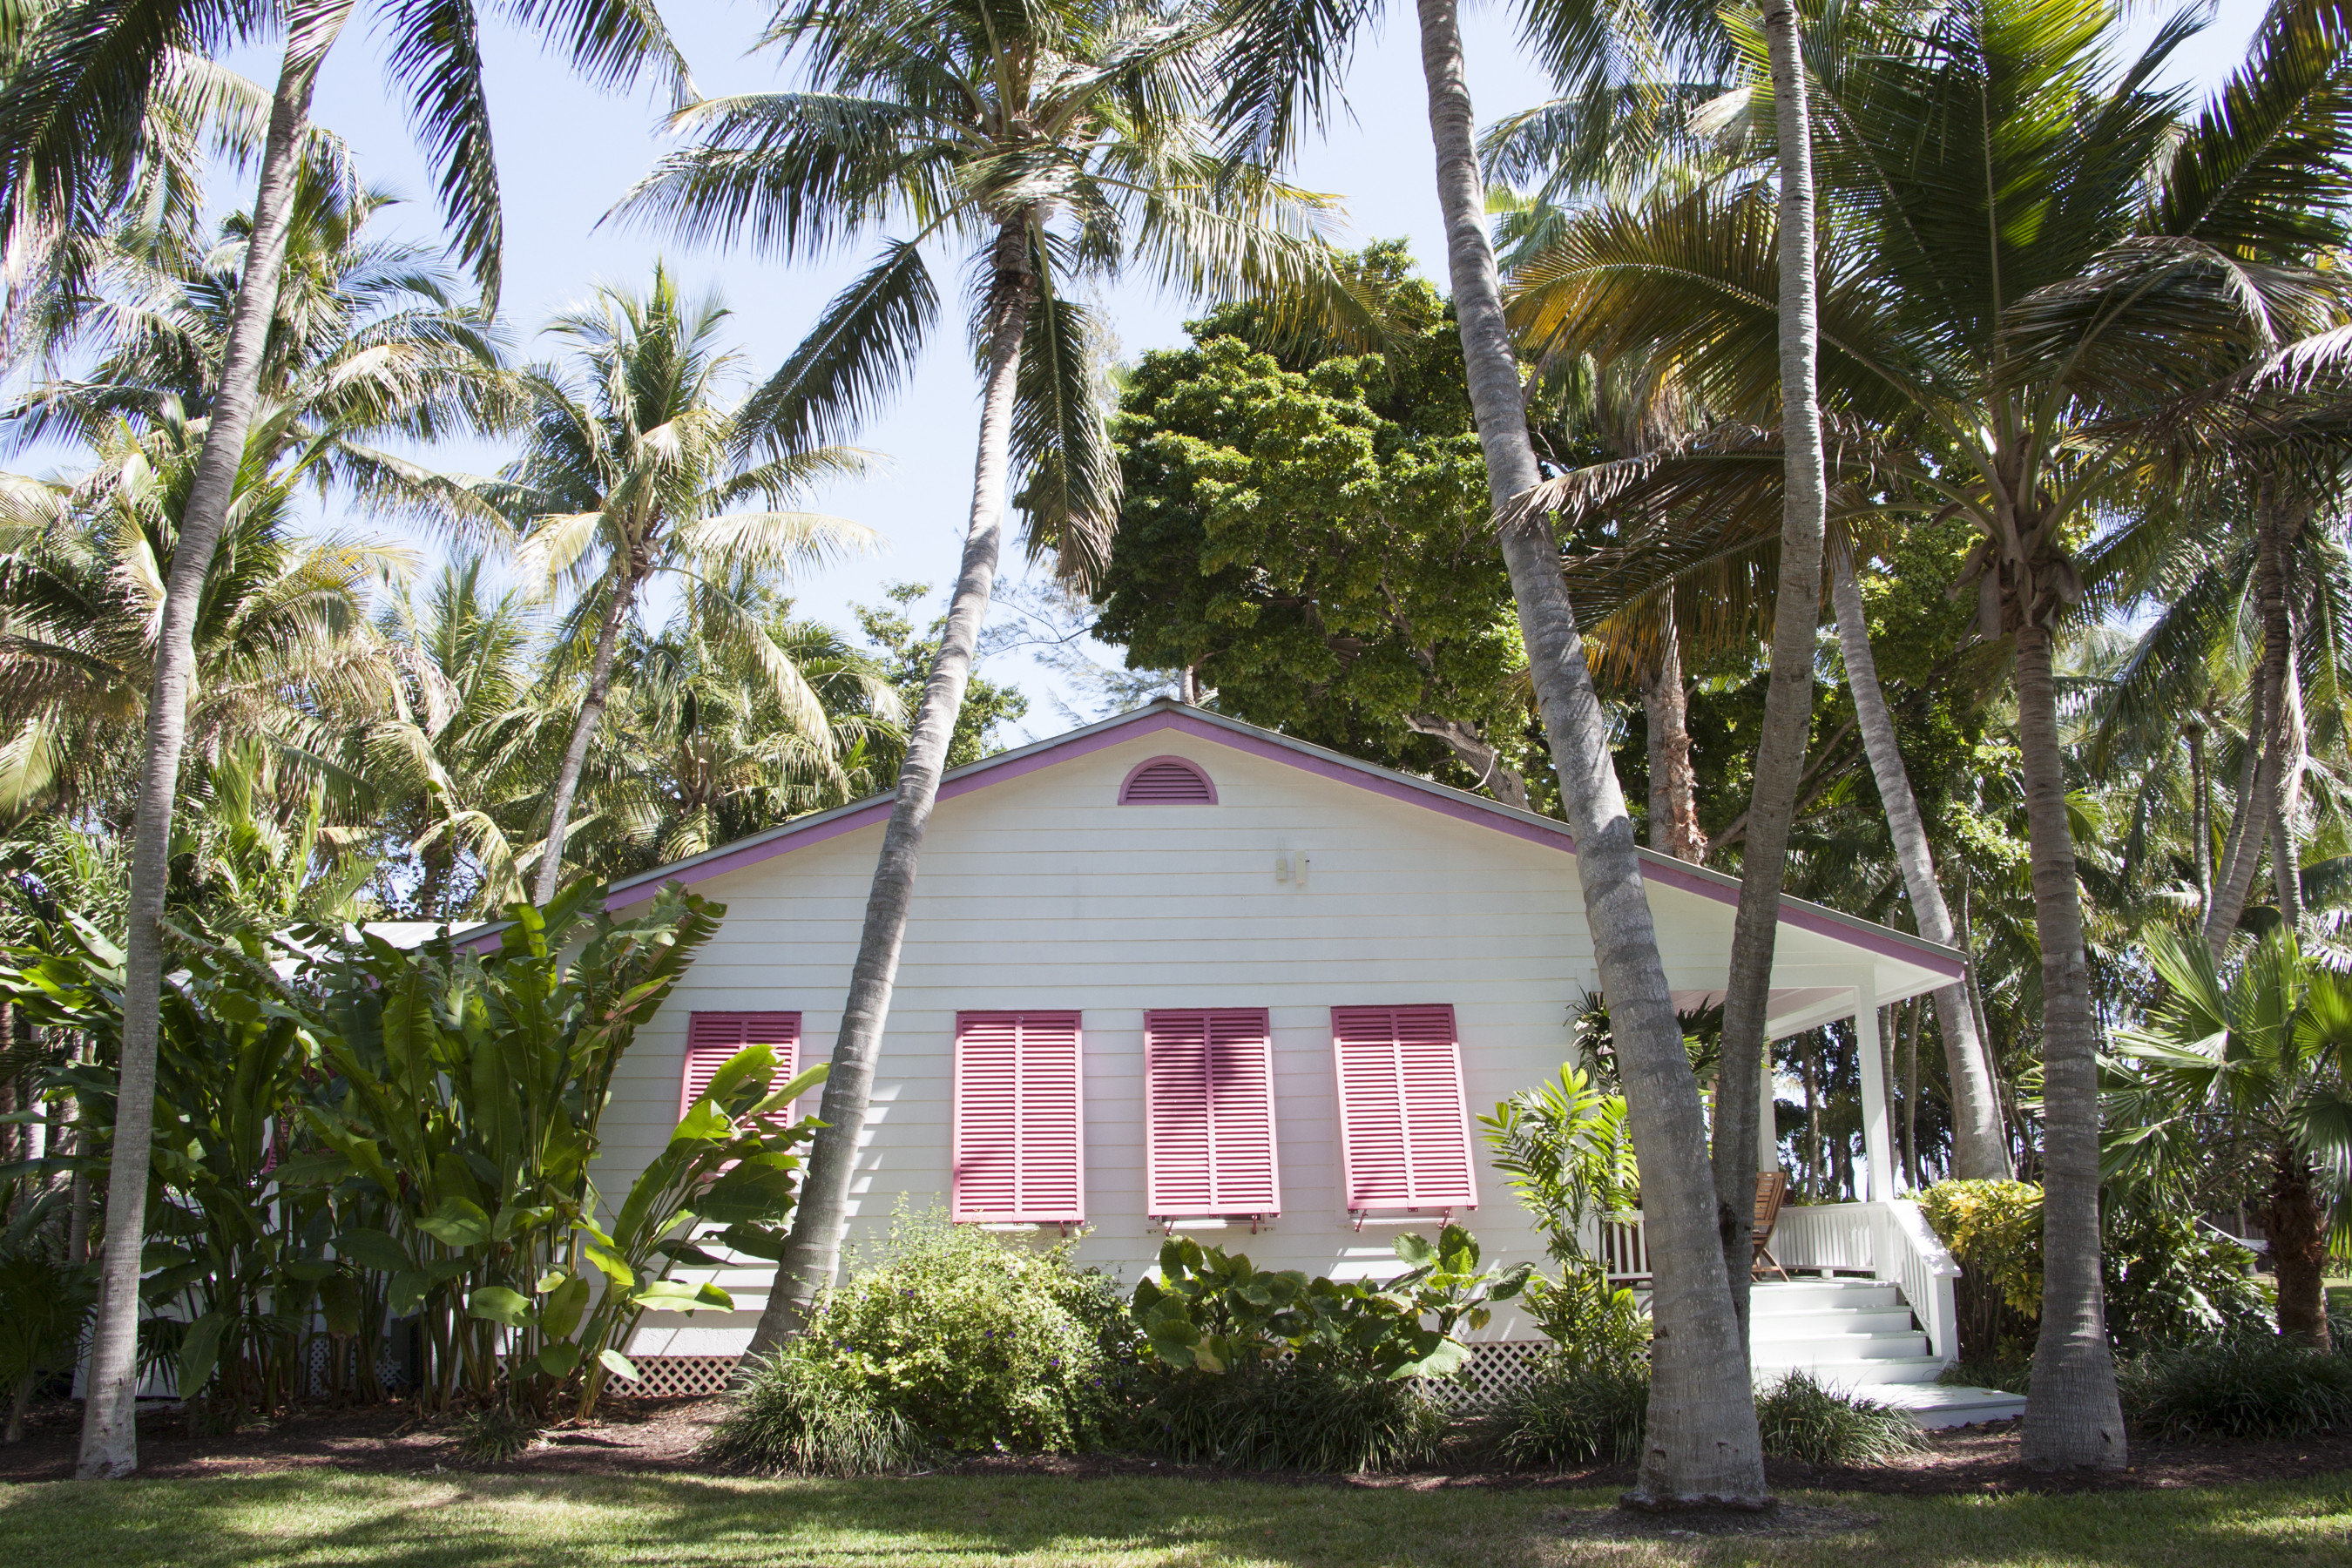 Hotels Romance tree outdoor plant property cottage house home arecales palm palm tree Resort real estate plantation estate Villa tropics vacation area